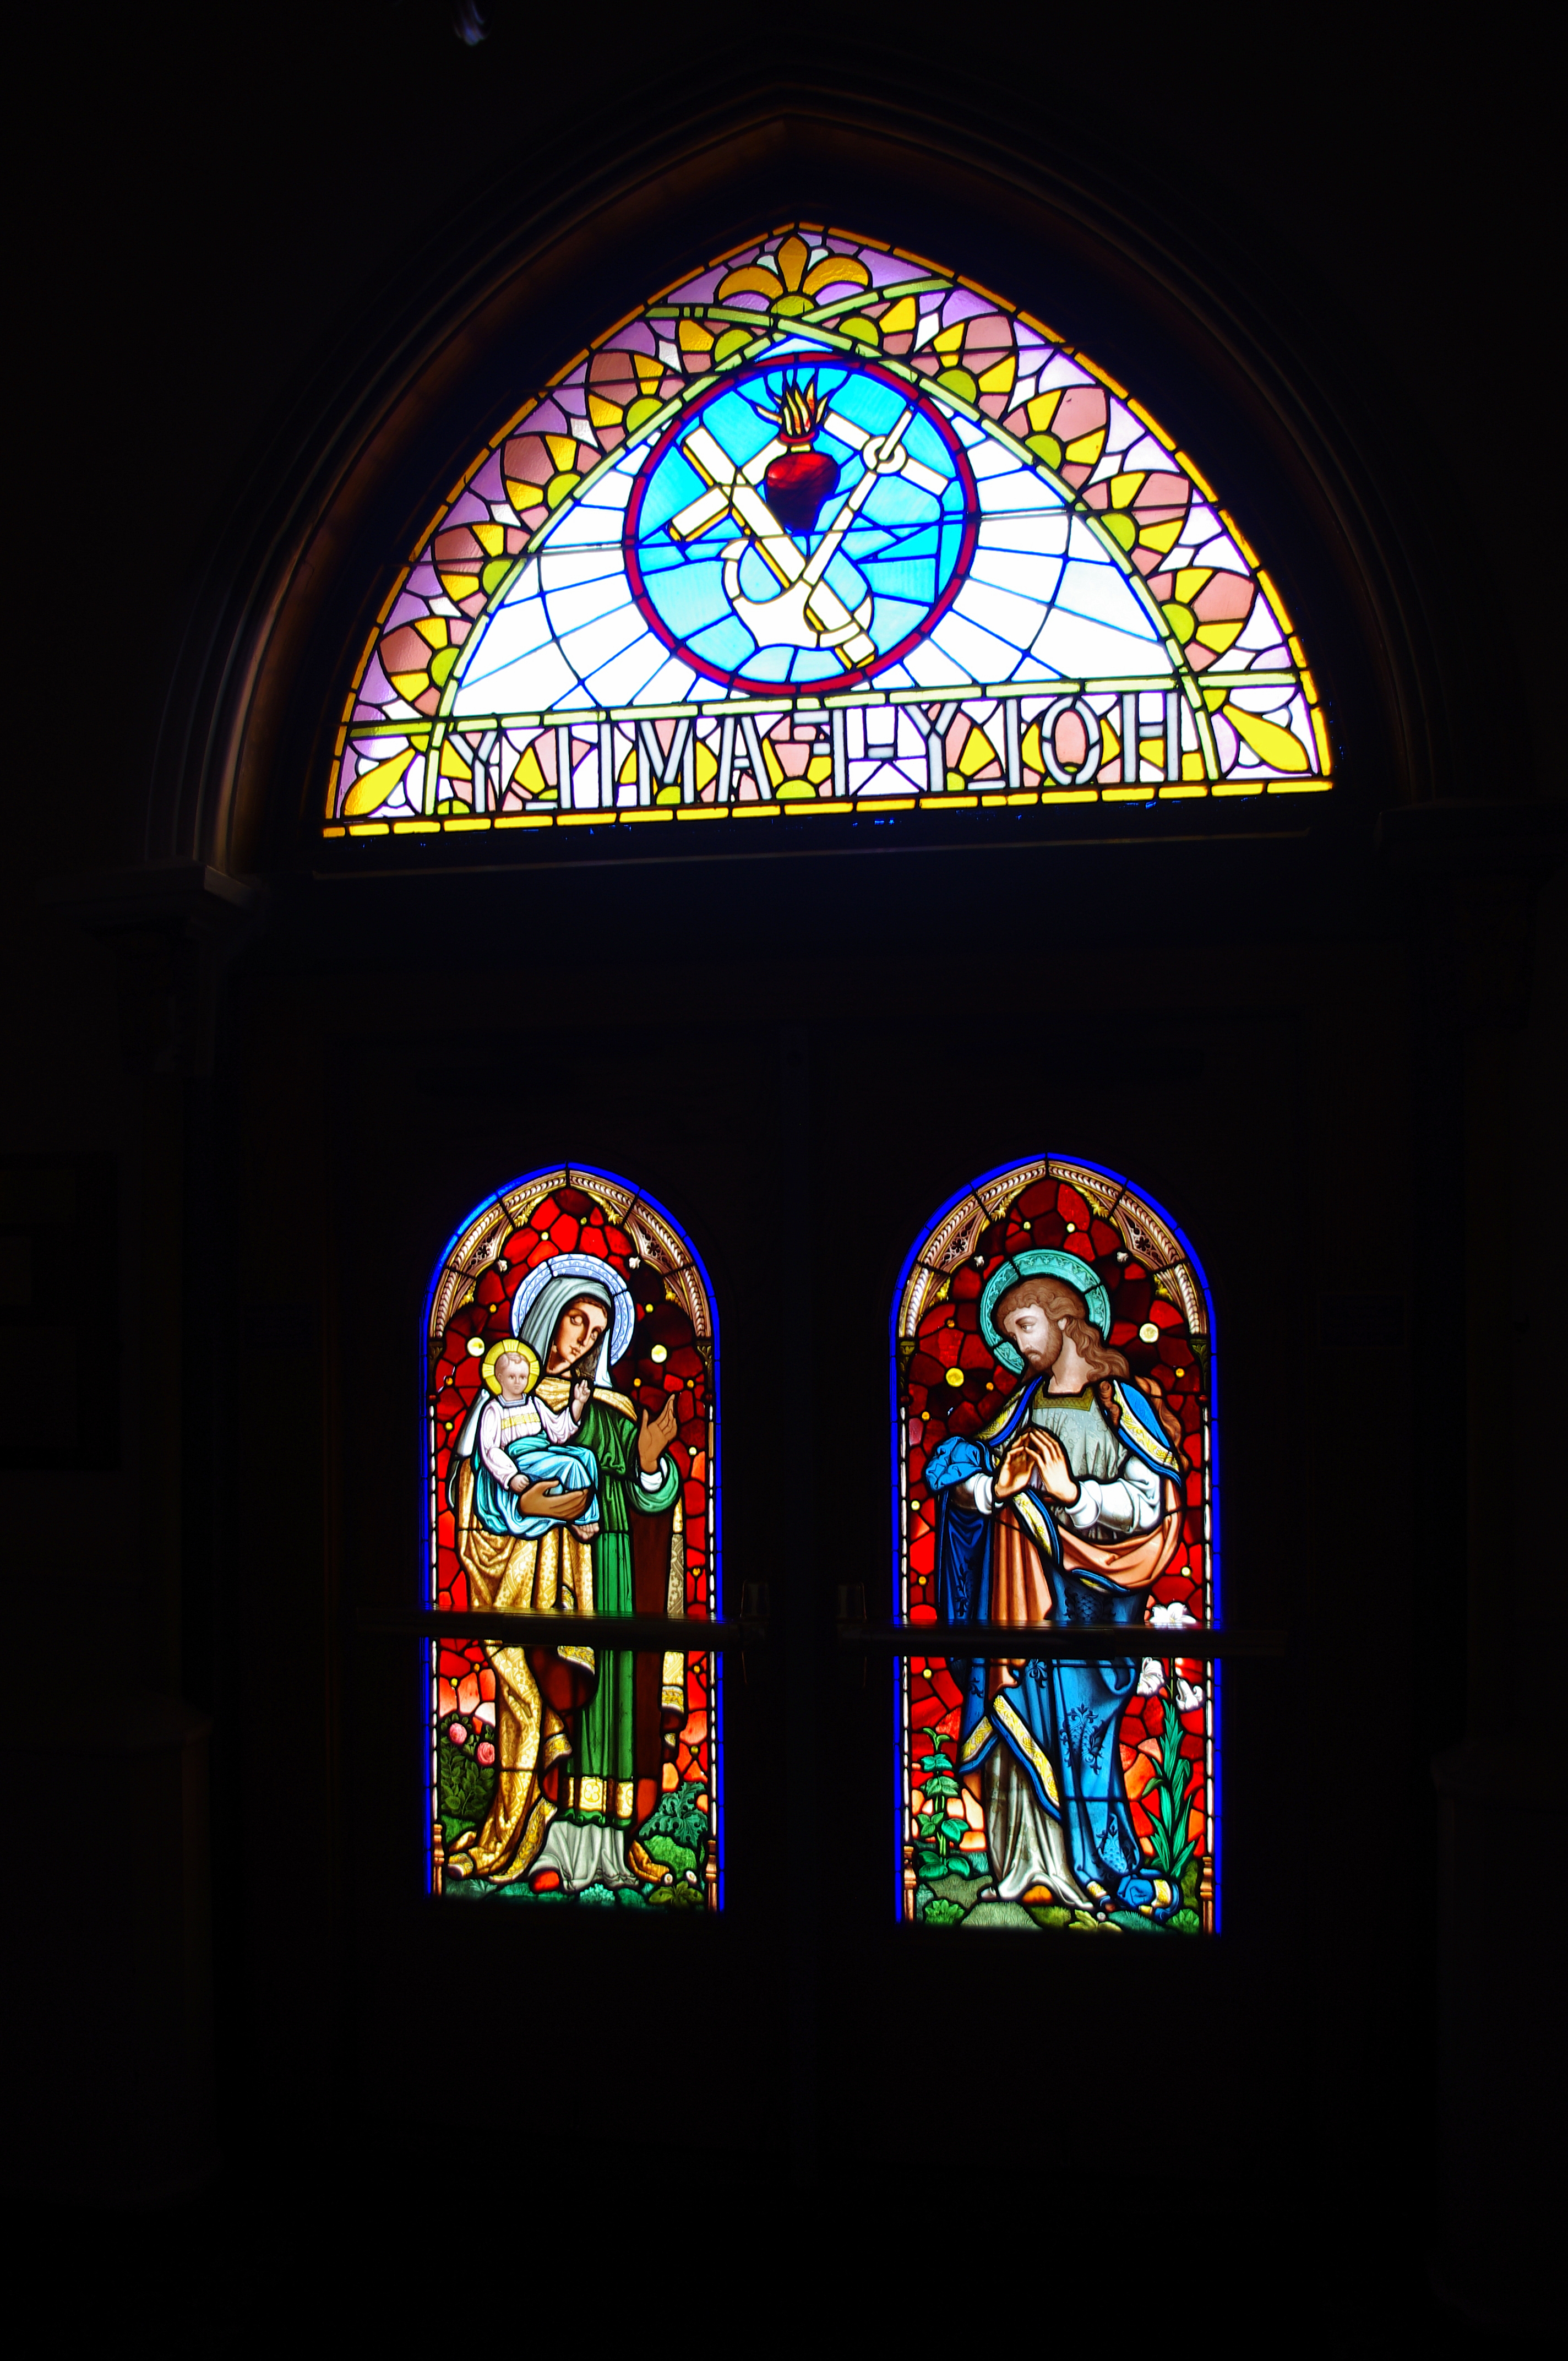 Fileholy Family Church Columbus Ohio Interior View Of Front